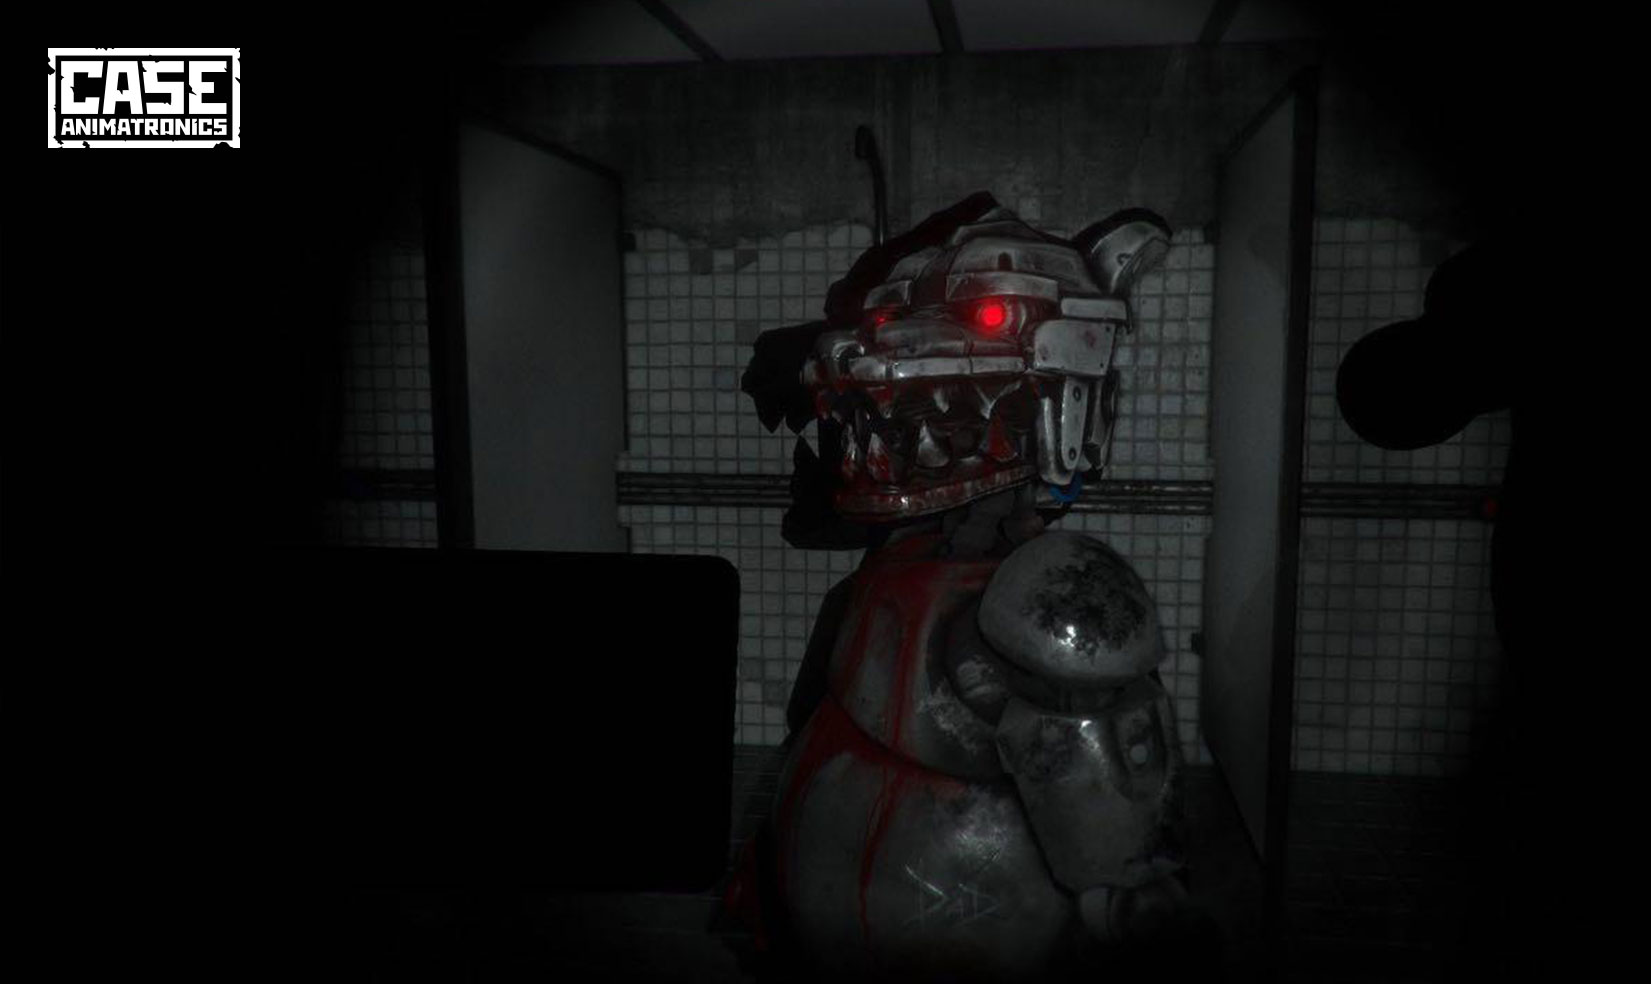 CASE: Animatronics screenshot